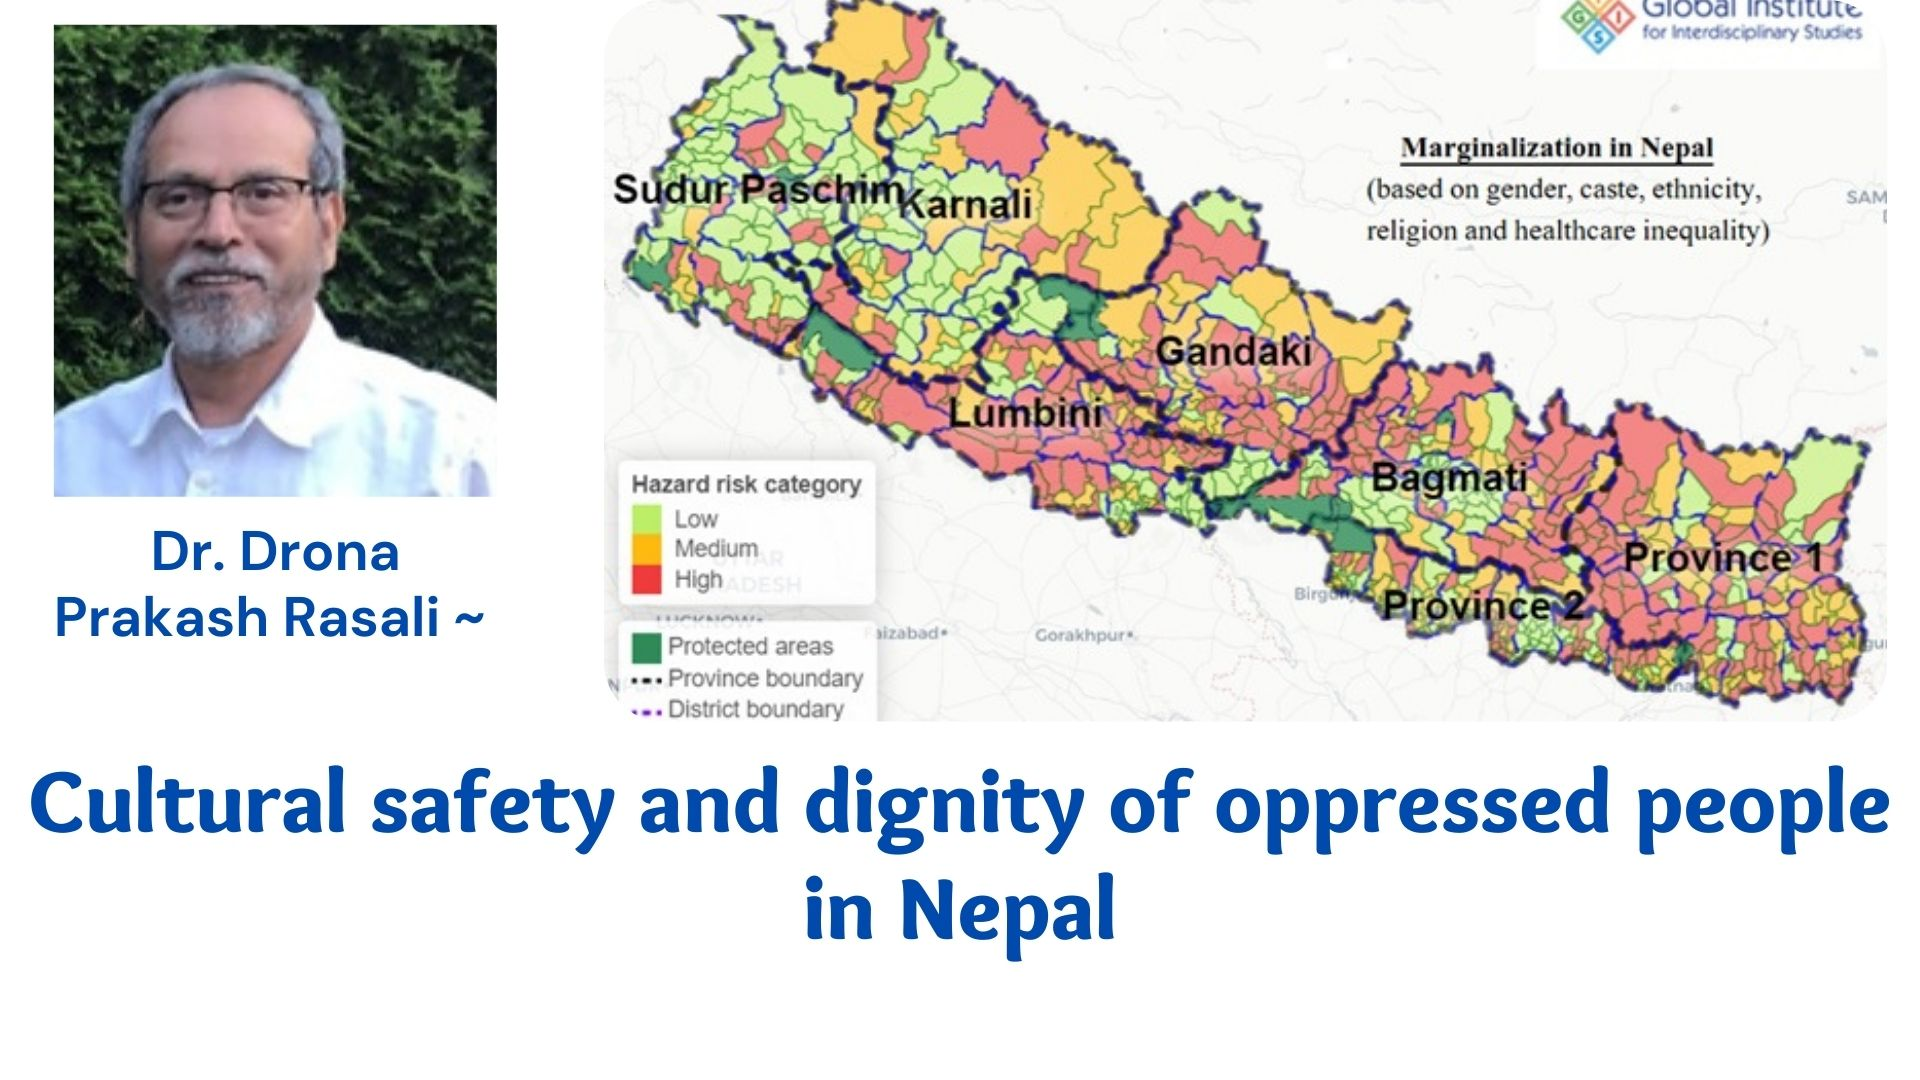 Cultural safety and dignity of oppressed people in Nepal